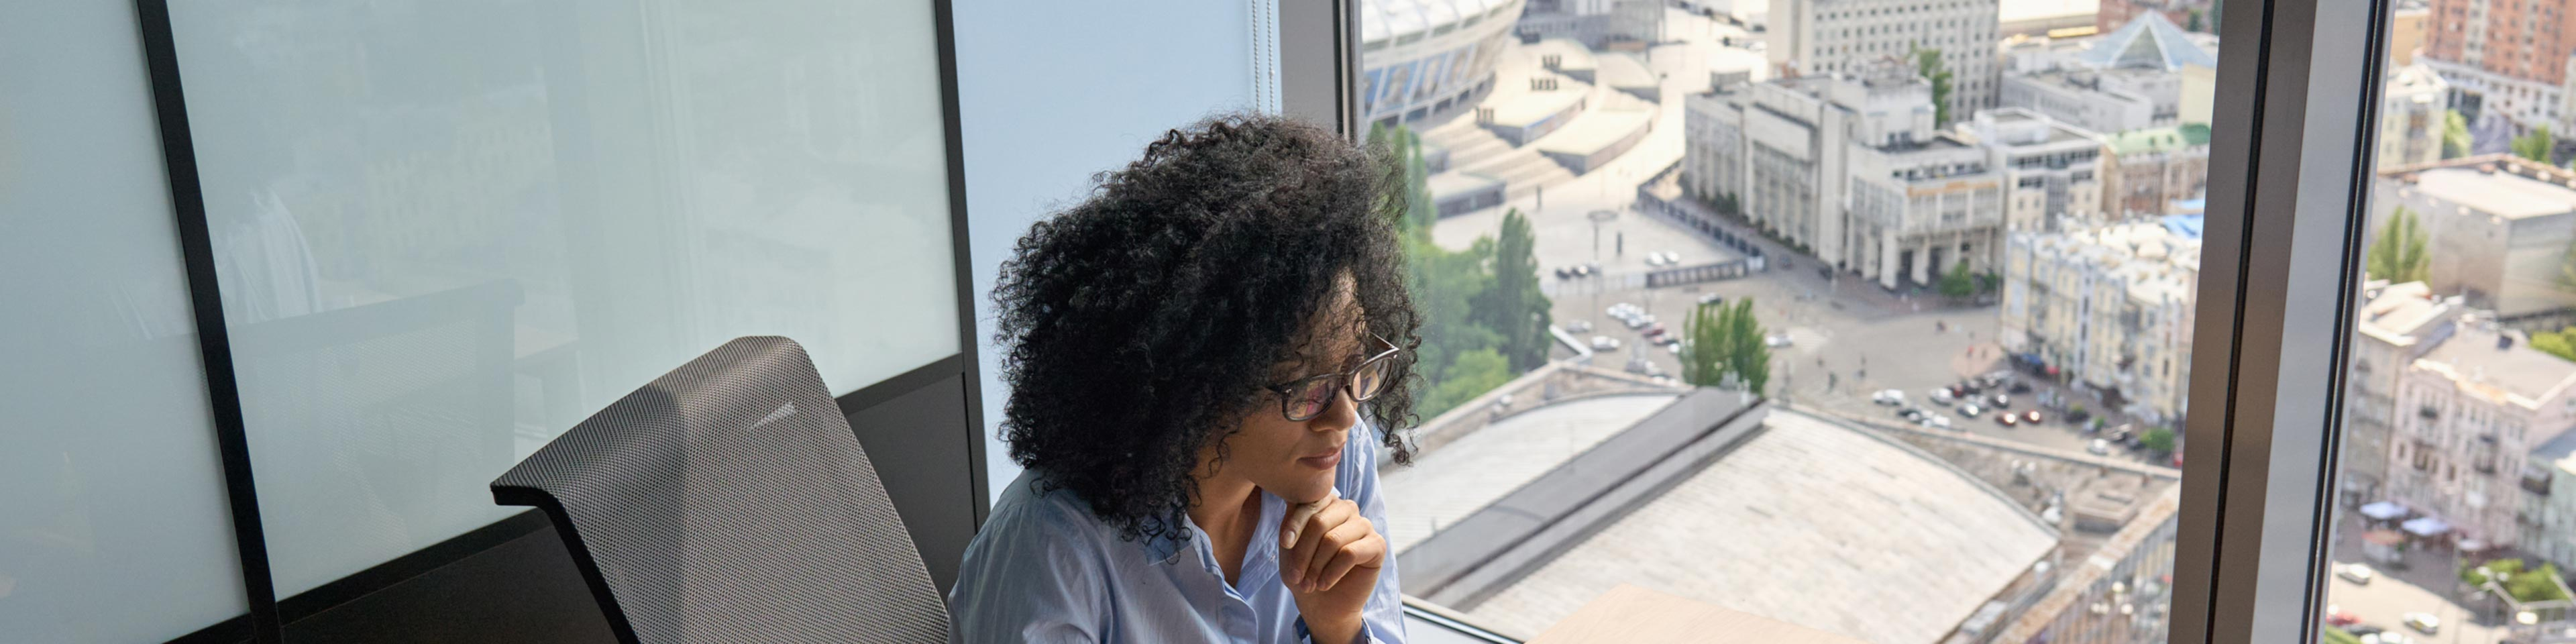 girl sitting at her desk by a window with a view of the city